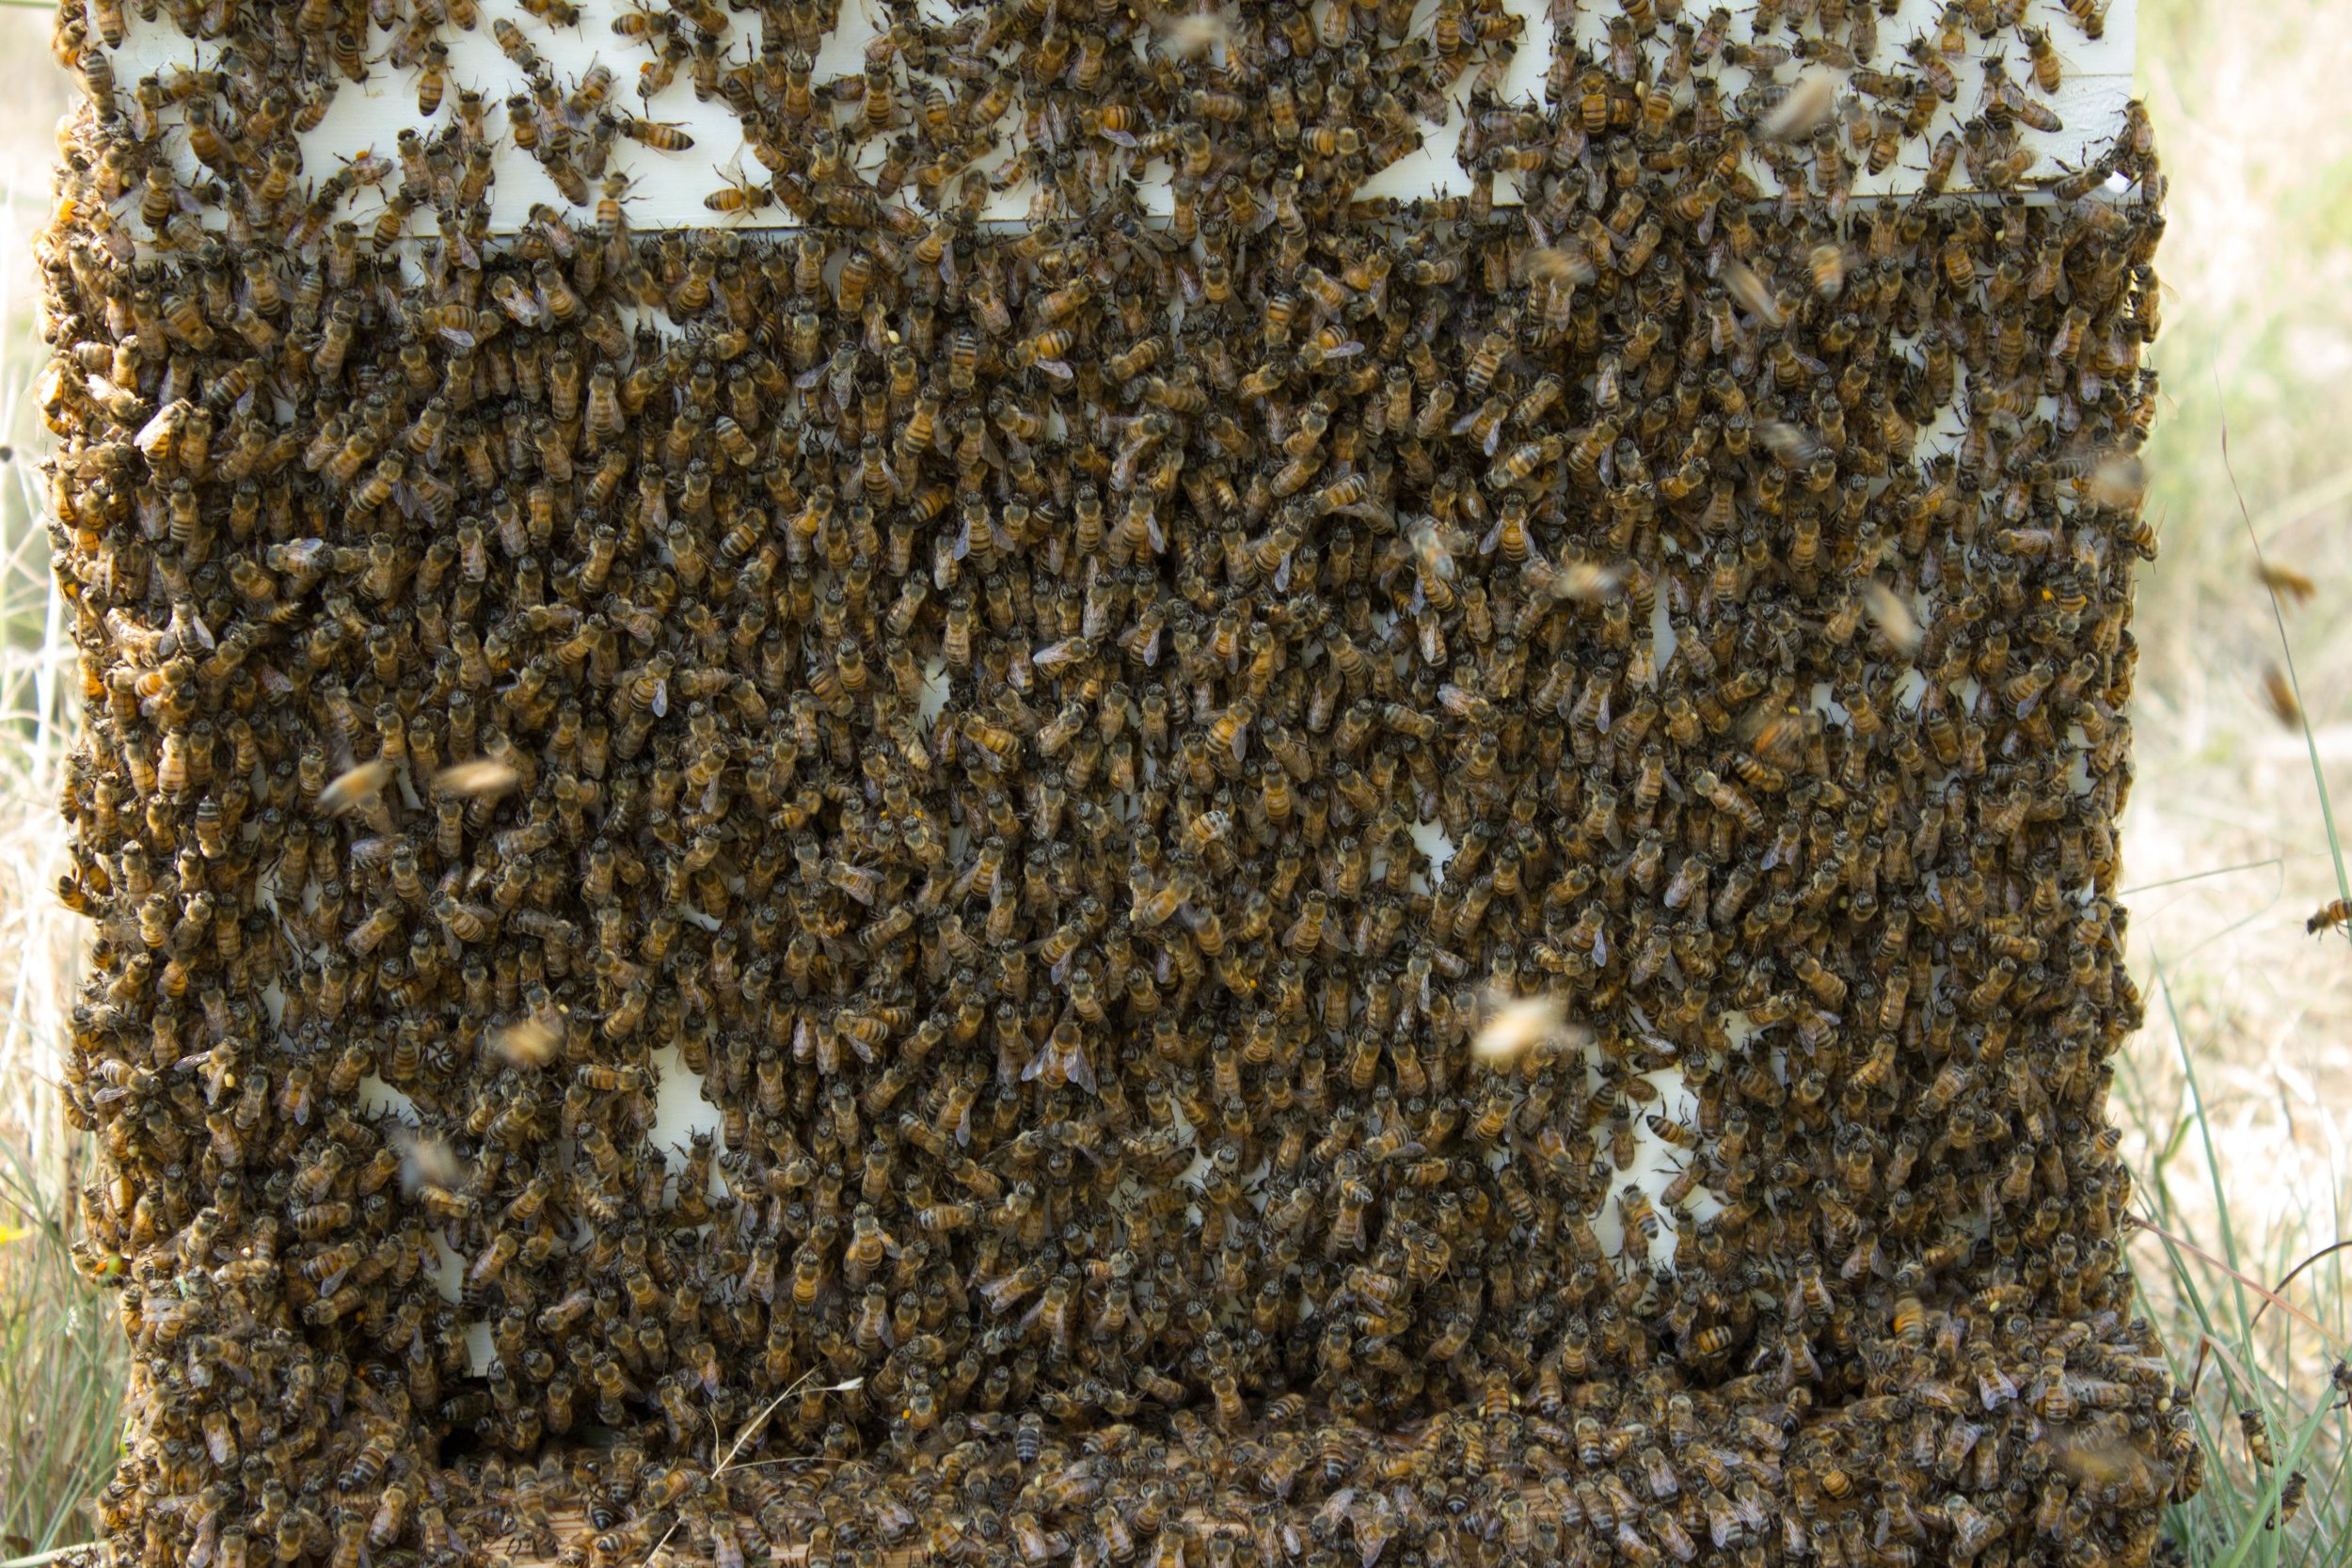 One of the hives after we had lifted every frame out looking for the queen